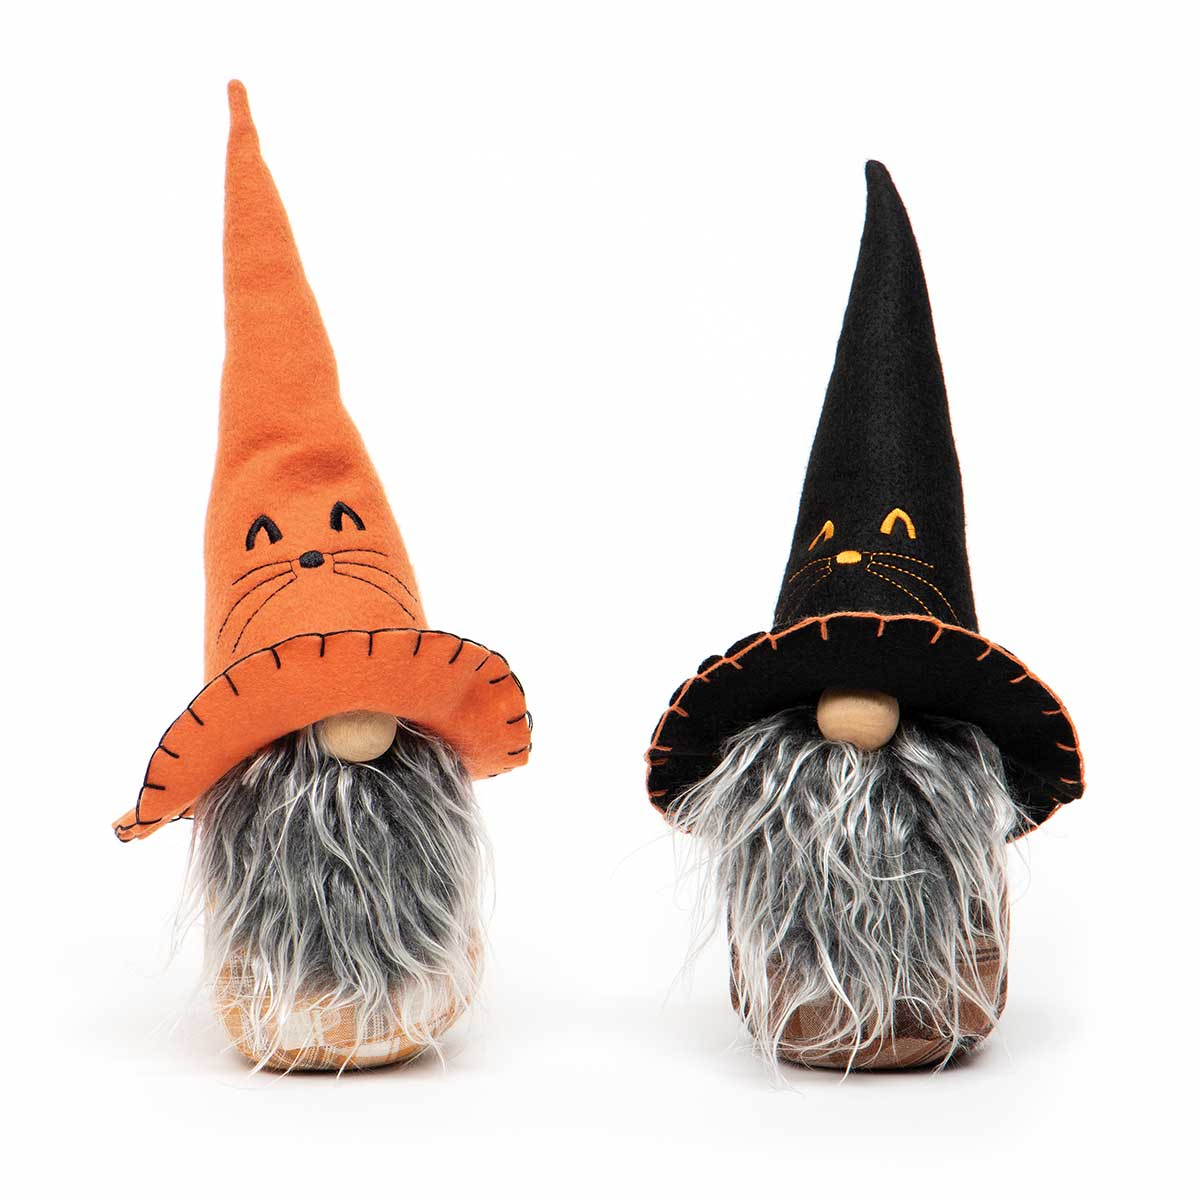 BINX HALLOWEEN GNOME ORANGE/BLACK WITH EMBROIDERED CAT